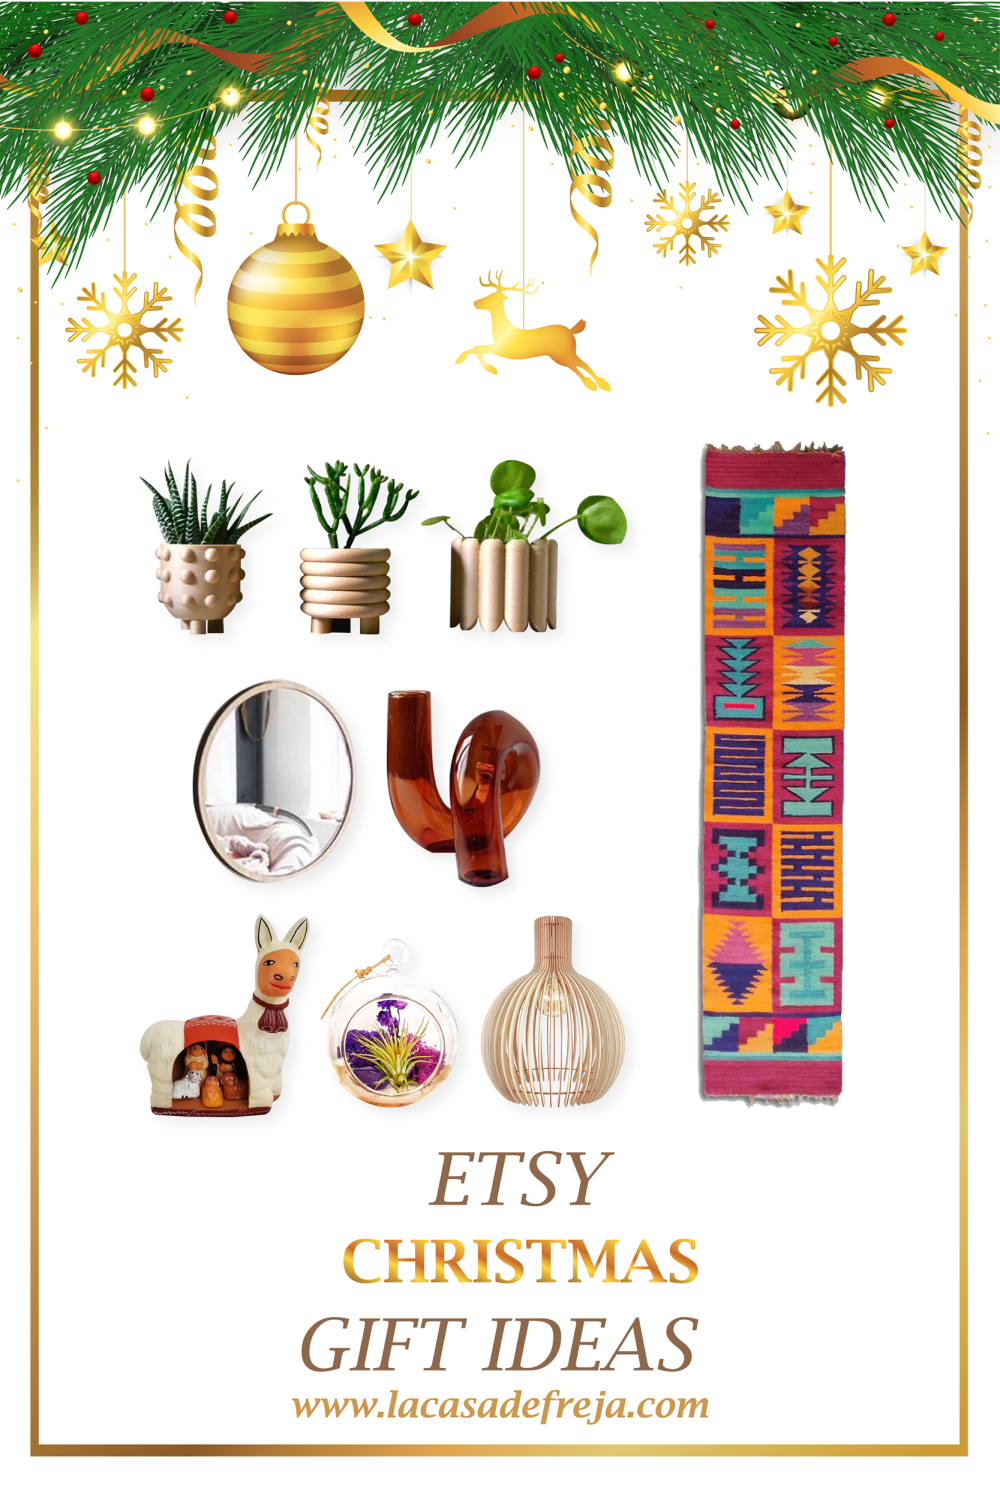 Etsy Christmas gift ideas for 2020 02